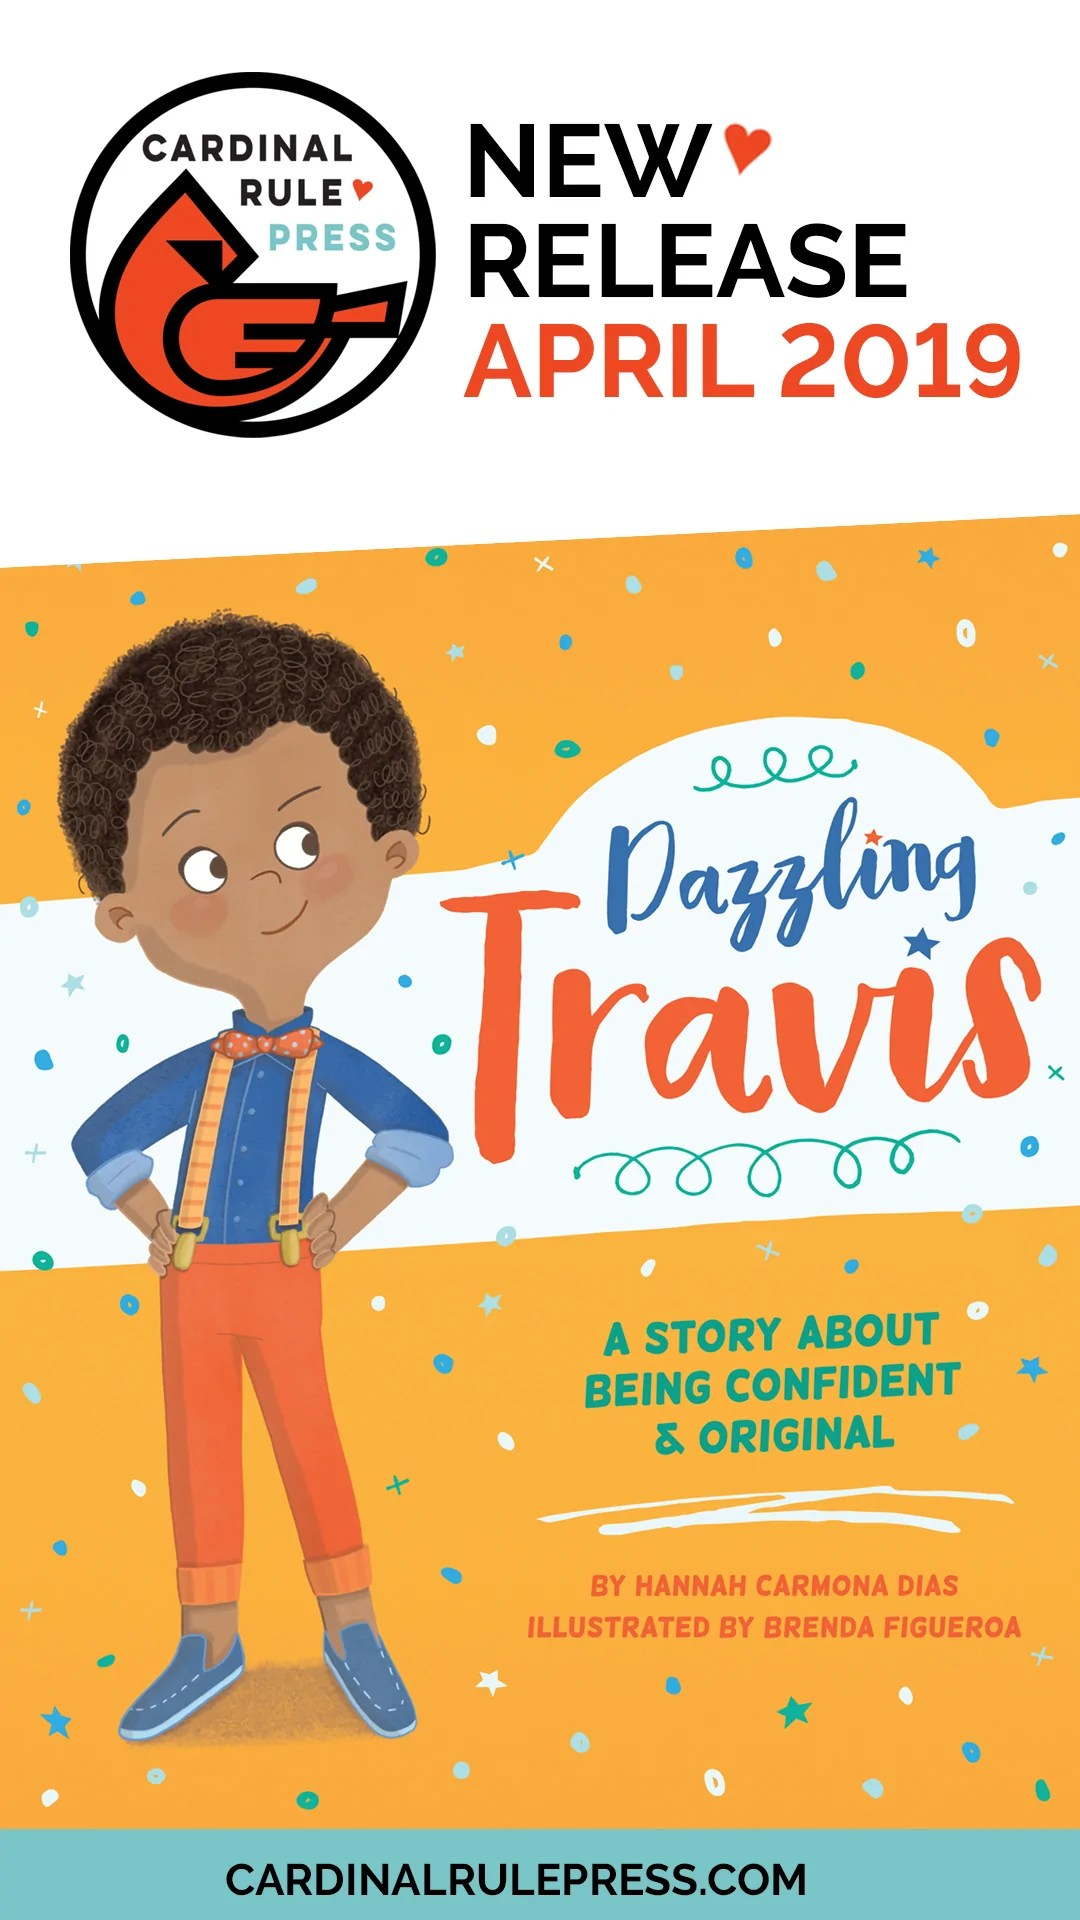 The Launch of Dazzling Travis